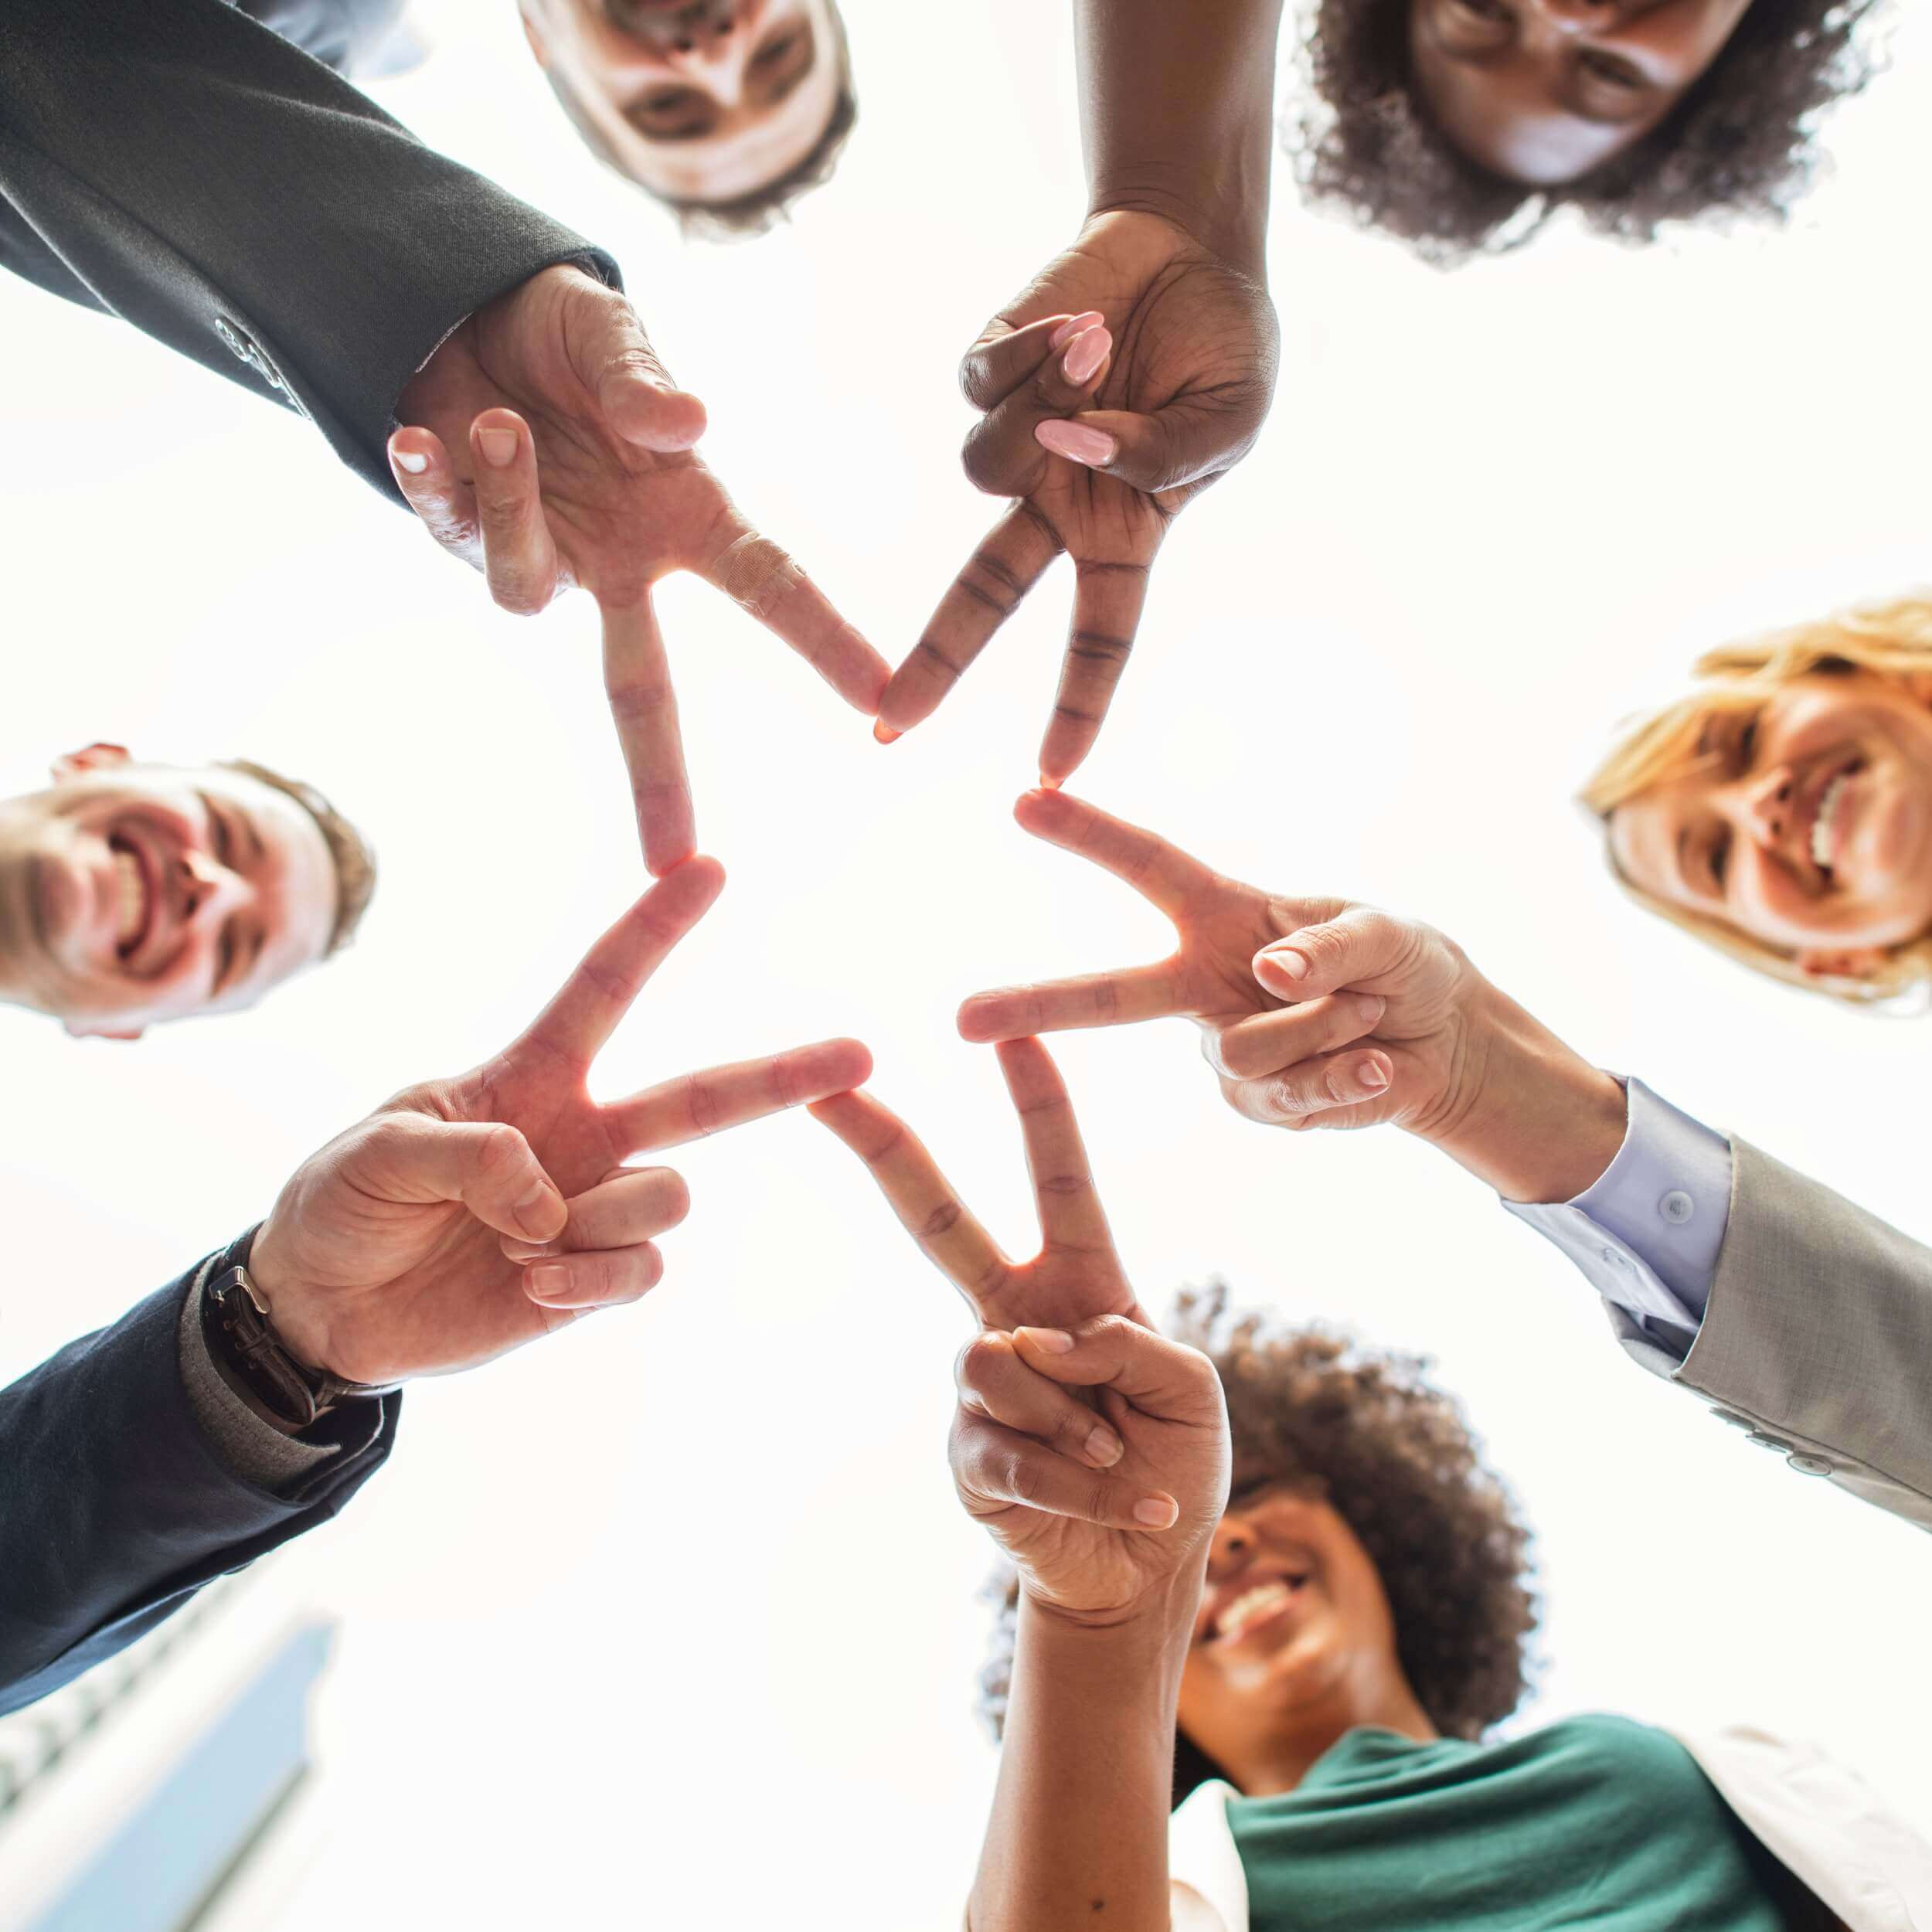 Business Adults Teamwork to Form a Star